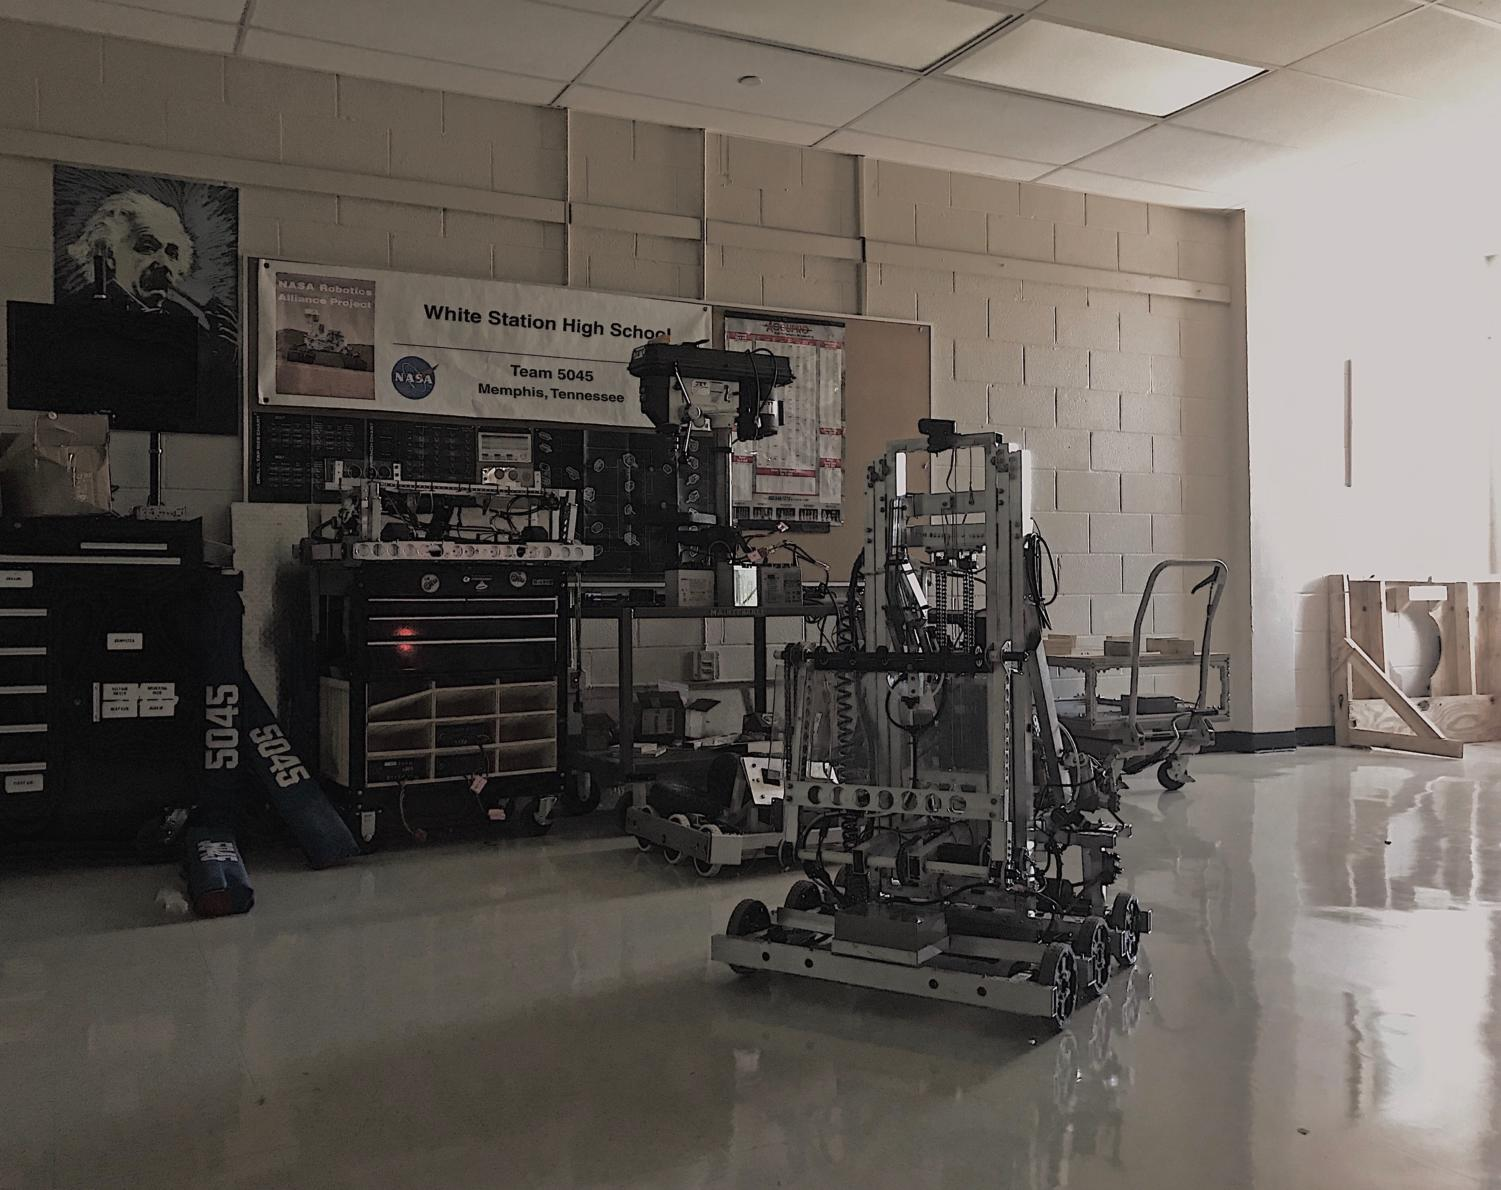 For last year's FRC, Team 5045 built a robot to the theme of